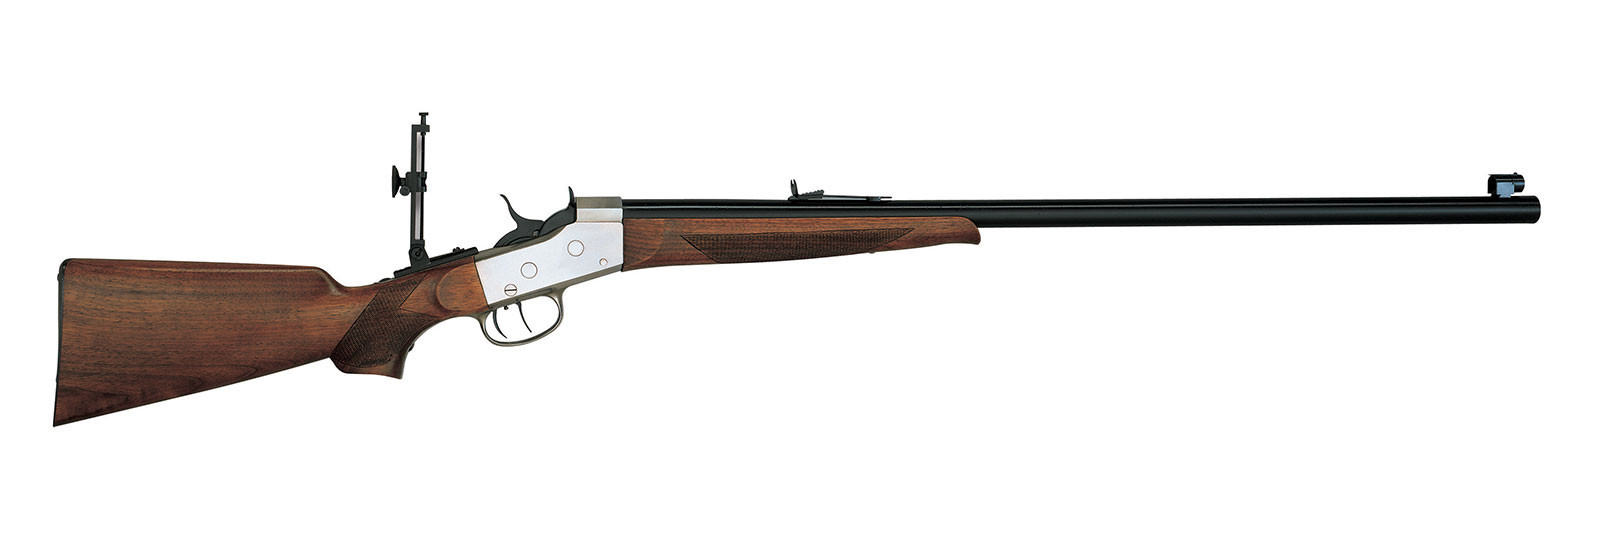 R.block creedmoor n.2 .45-70